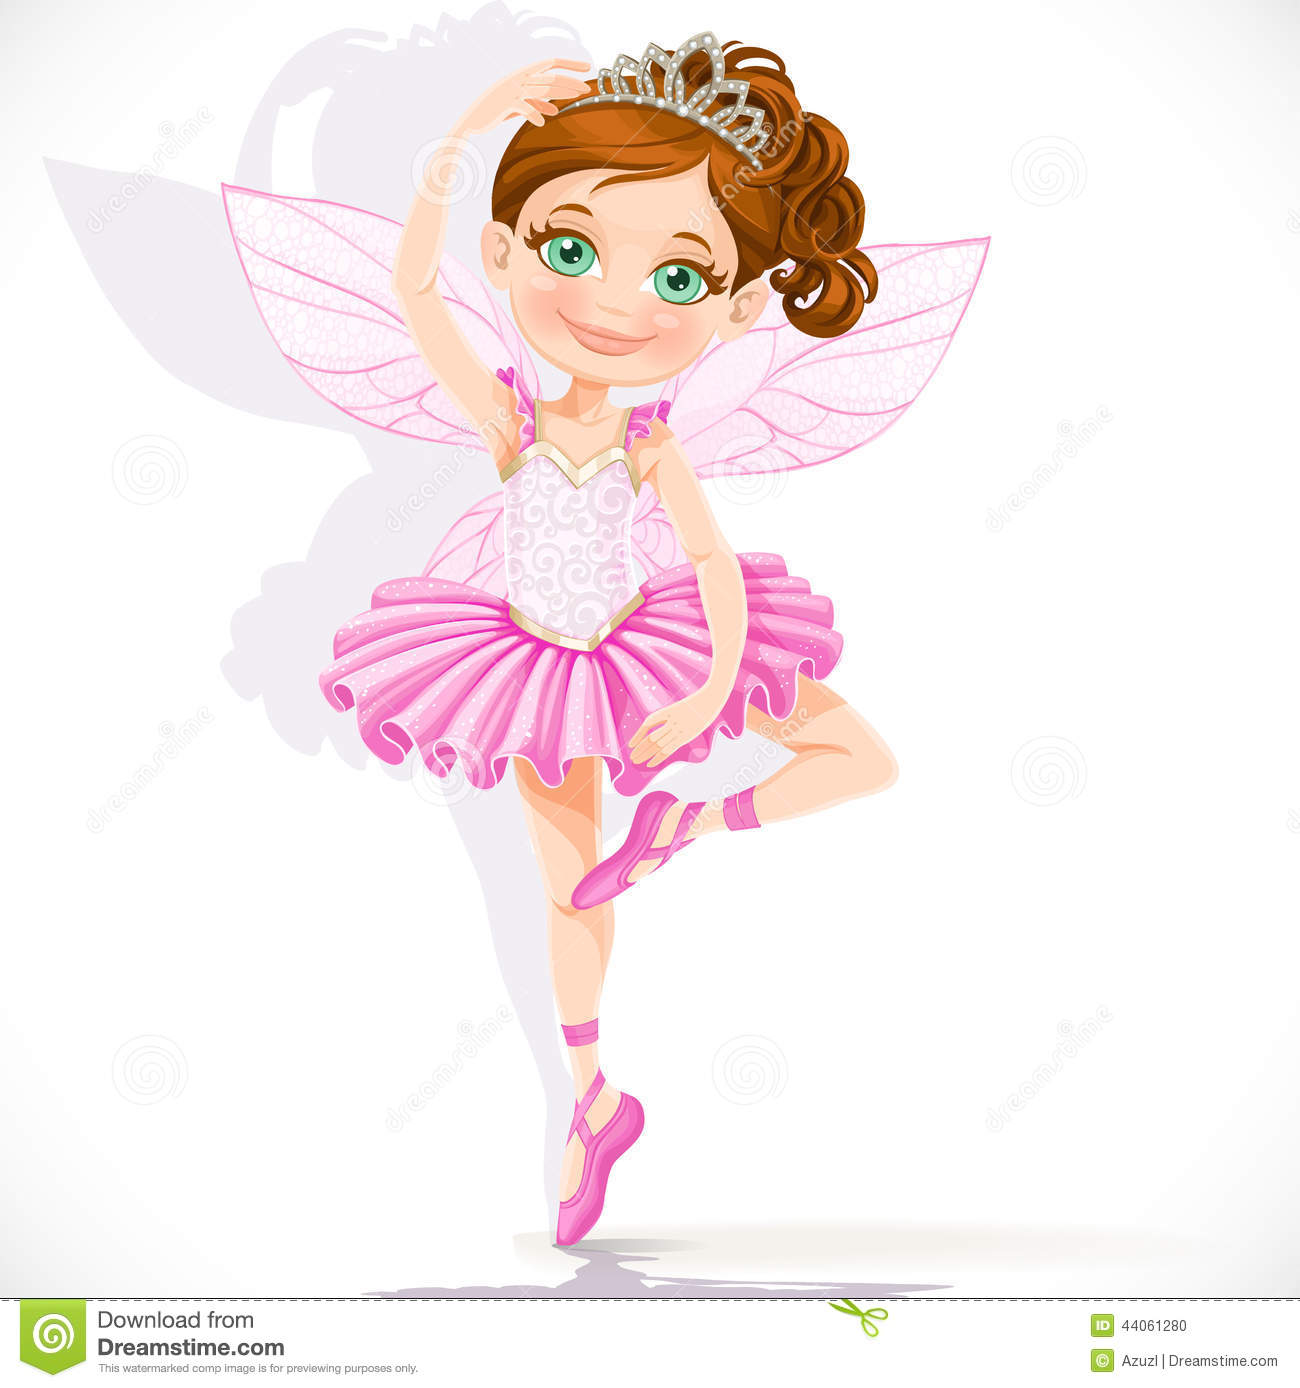 Cute Little Baby Girl Wallpapers Cute Little Fairy Girl In Pink Tutu And Tiara Stock Vector